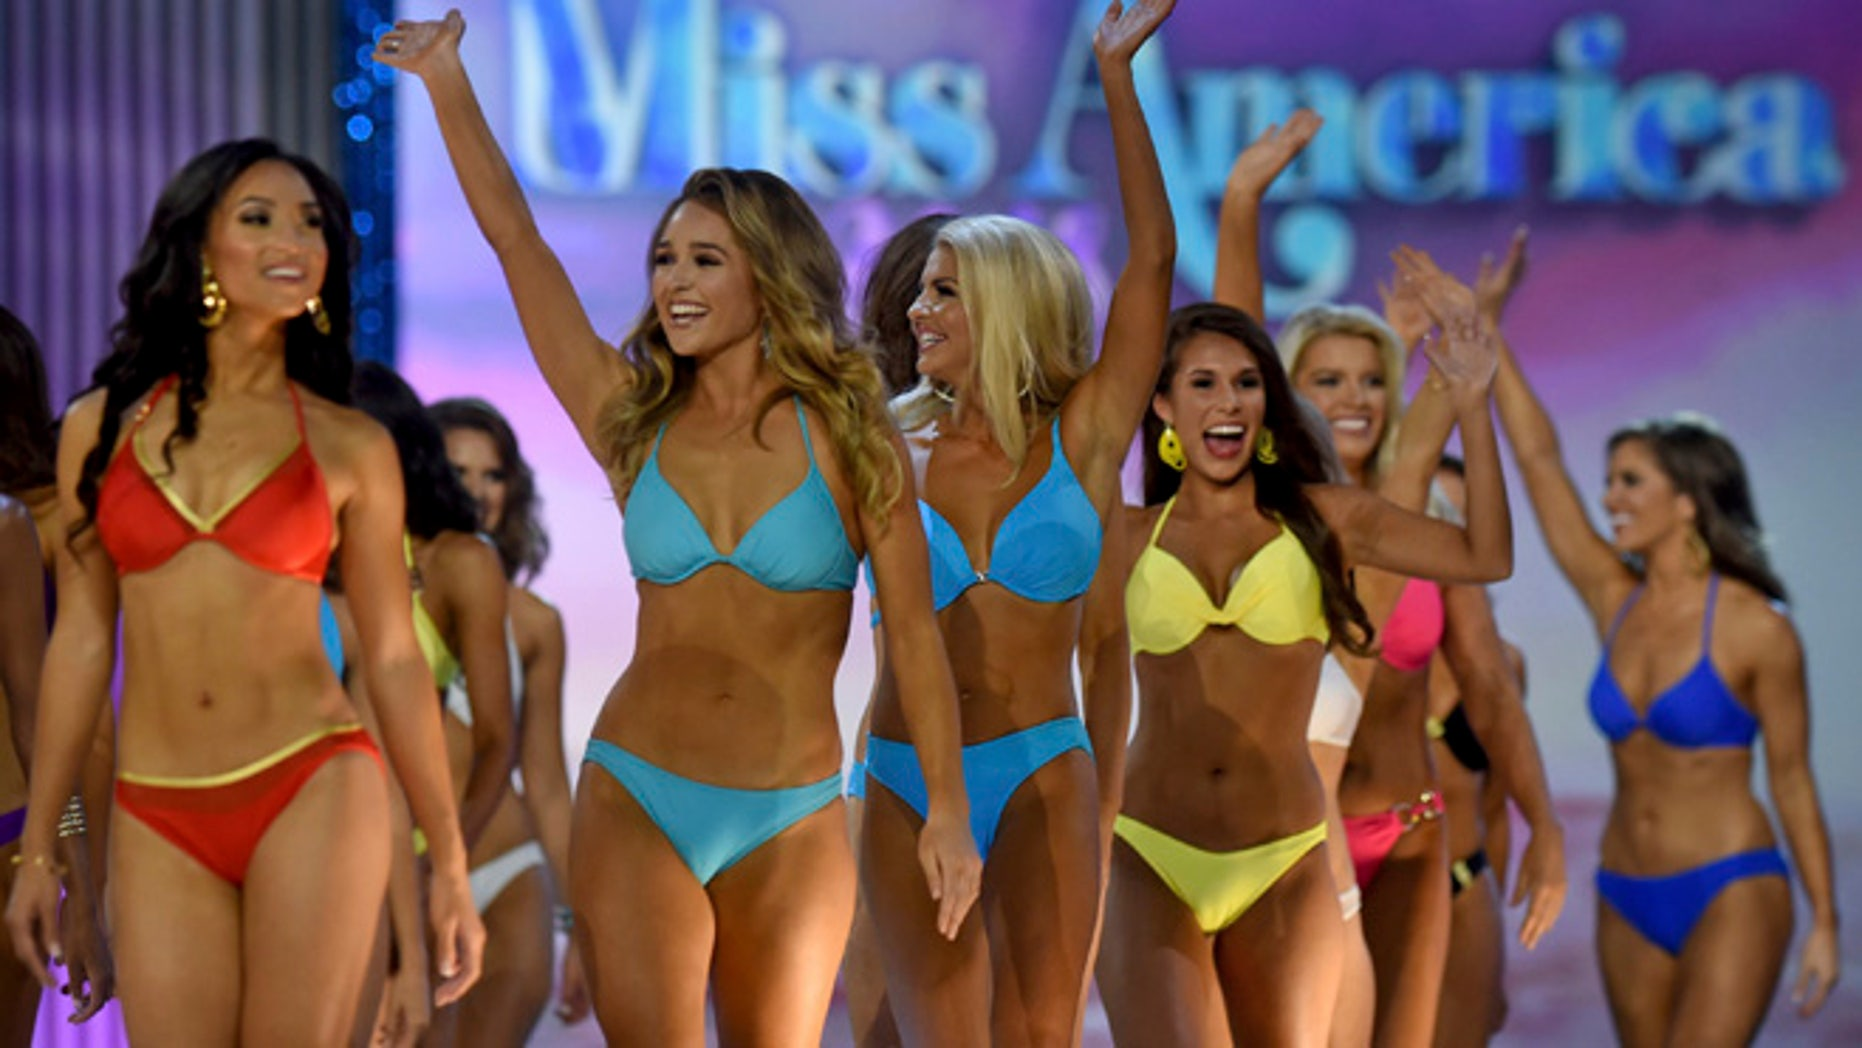 Contestants greet onstage in the swimsuit competition during the first night of Miss America 2018 preliminaries in Atlantic City.